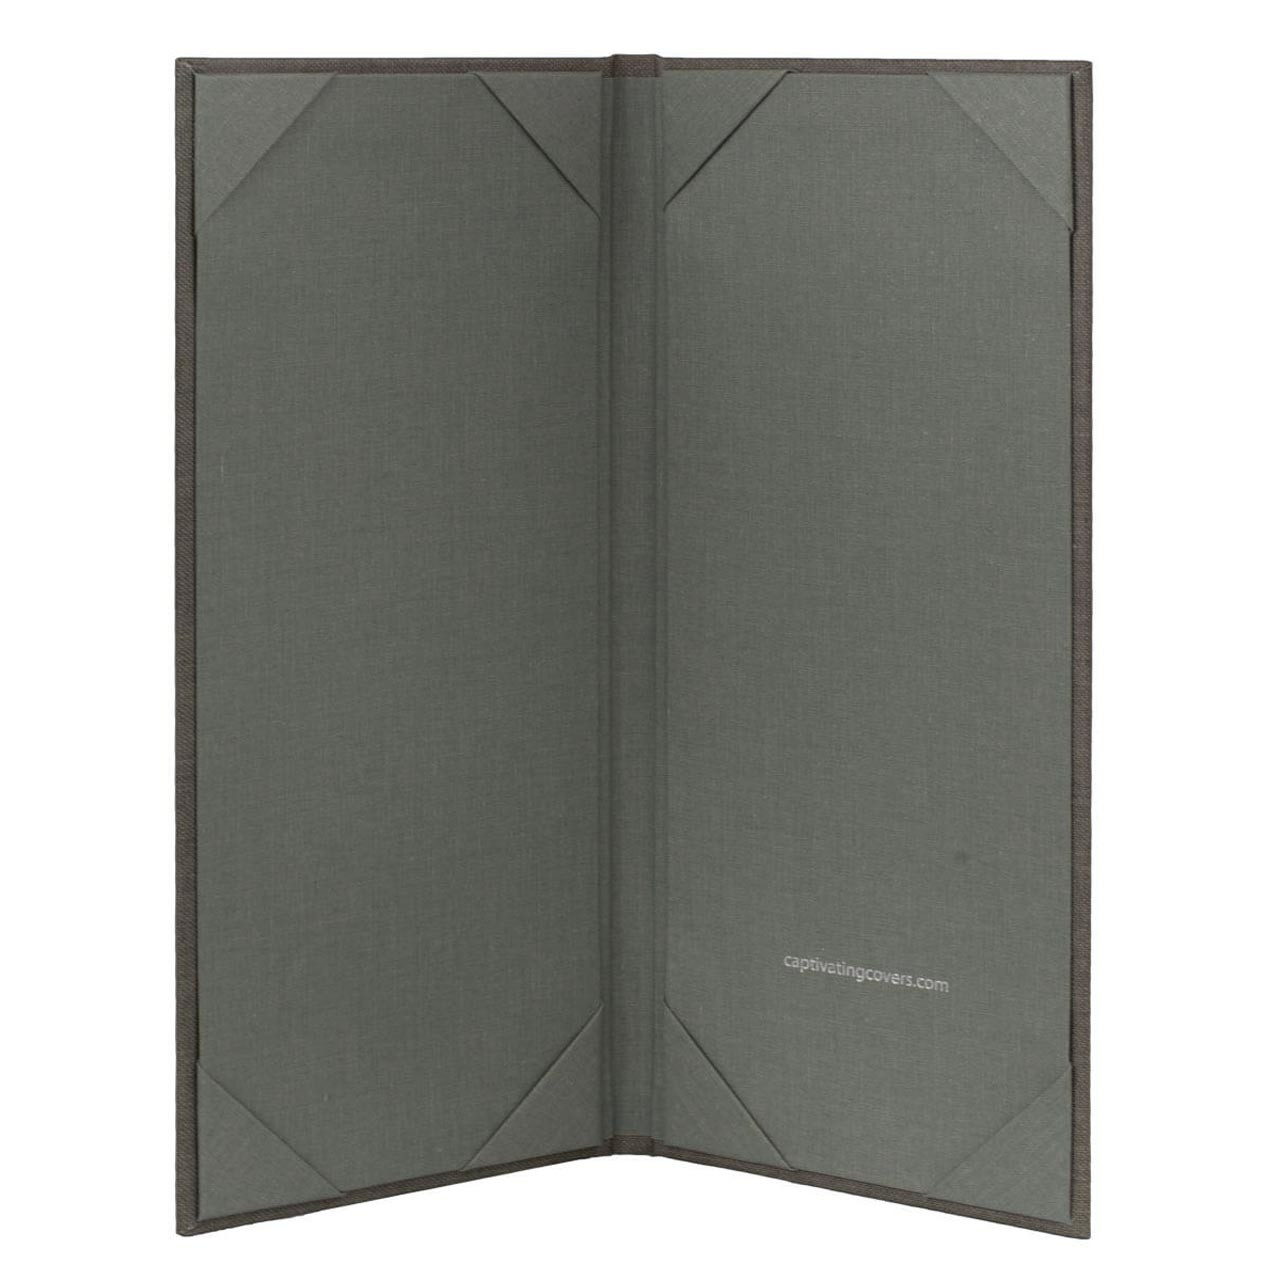 Menu Cover (Gray) 4.25 in. x 11 in. Insert, 2-Panel  (inside)